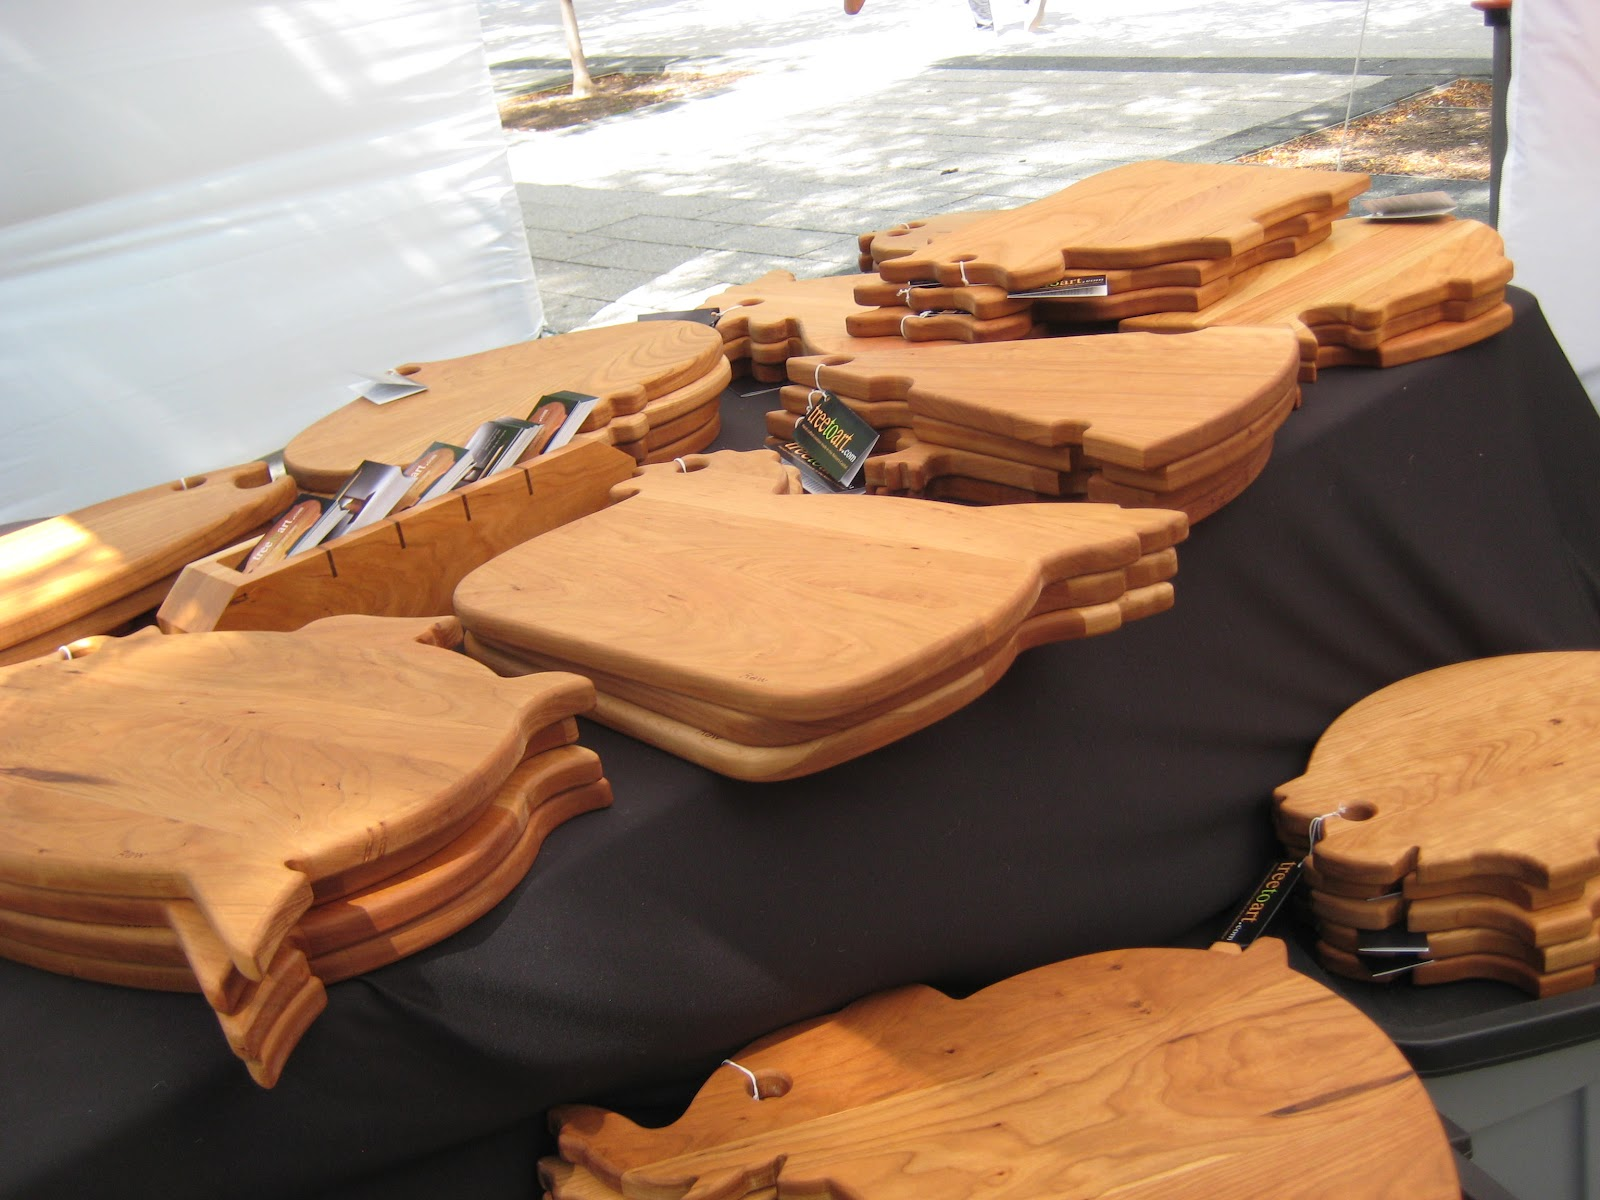 Ballston Arts Market: Photos from Saturday - Cool Cutting Board Designs's Market